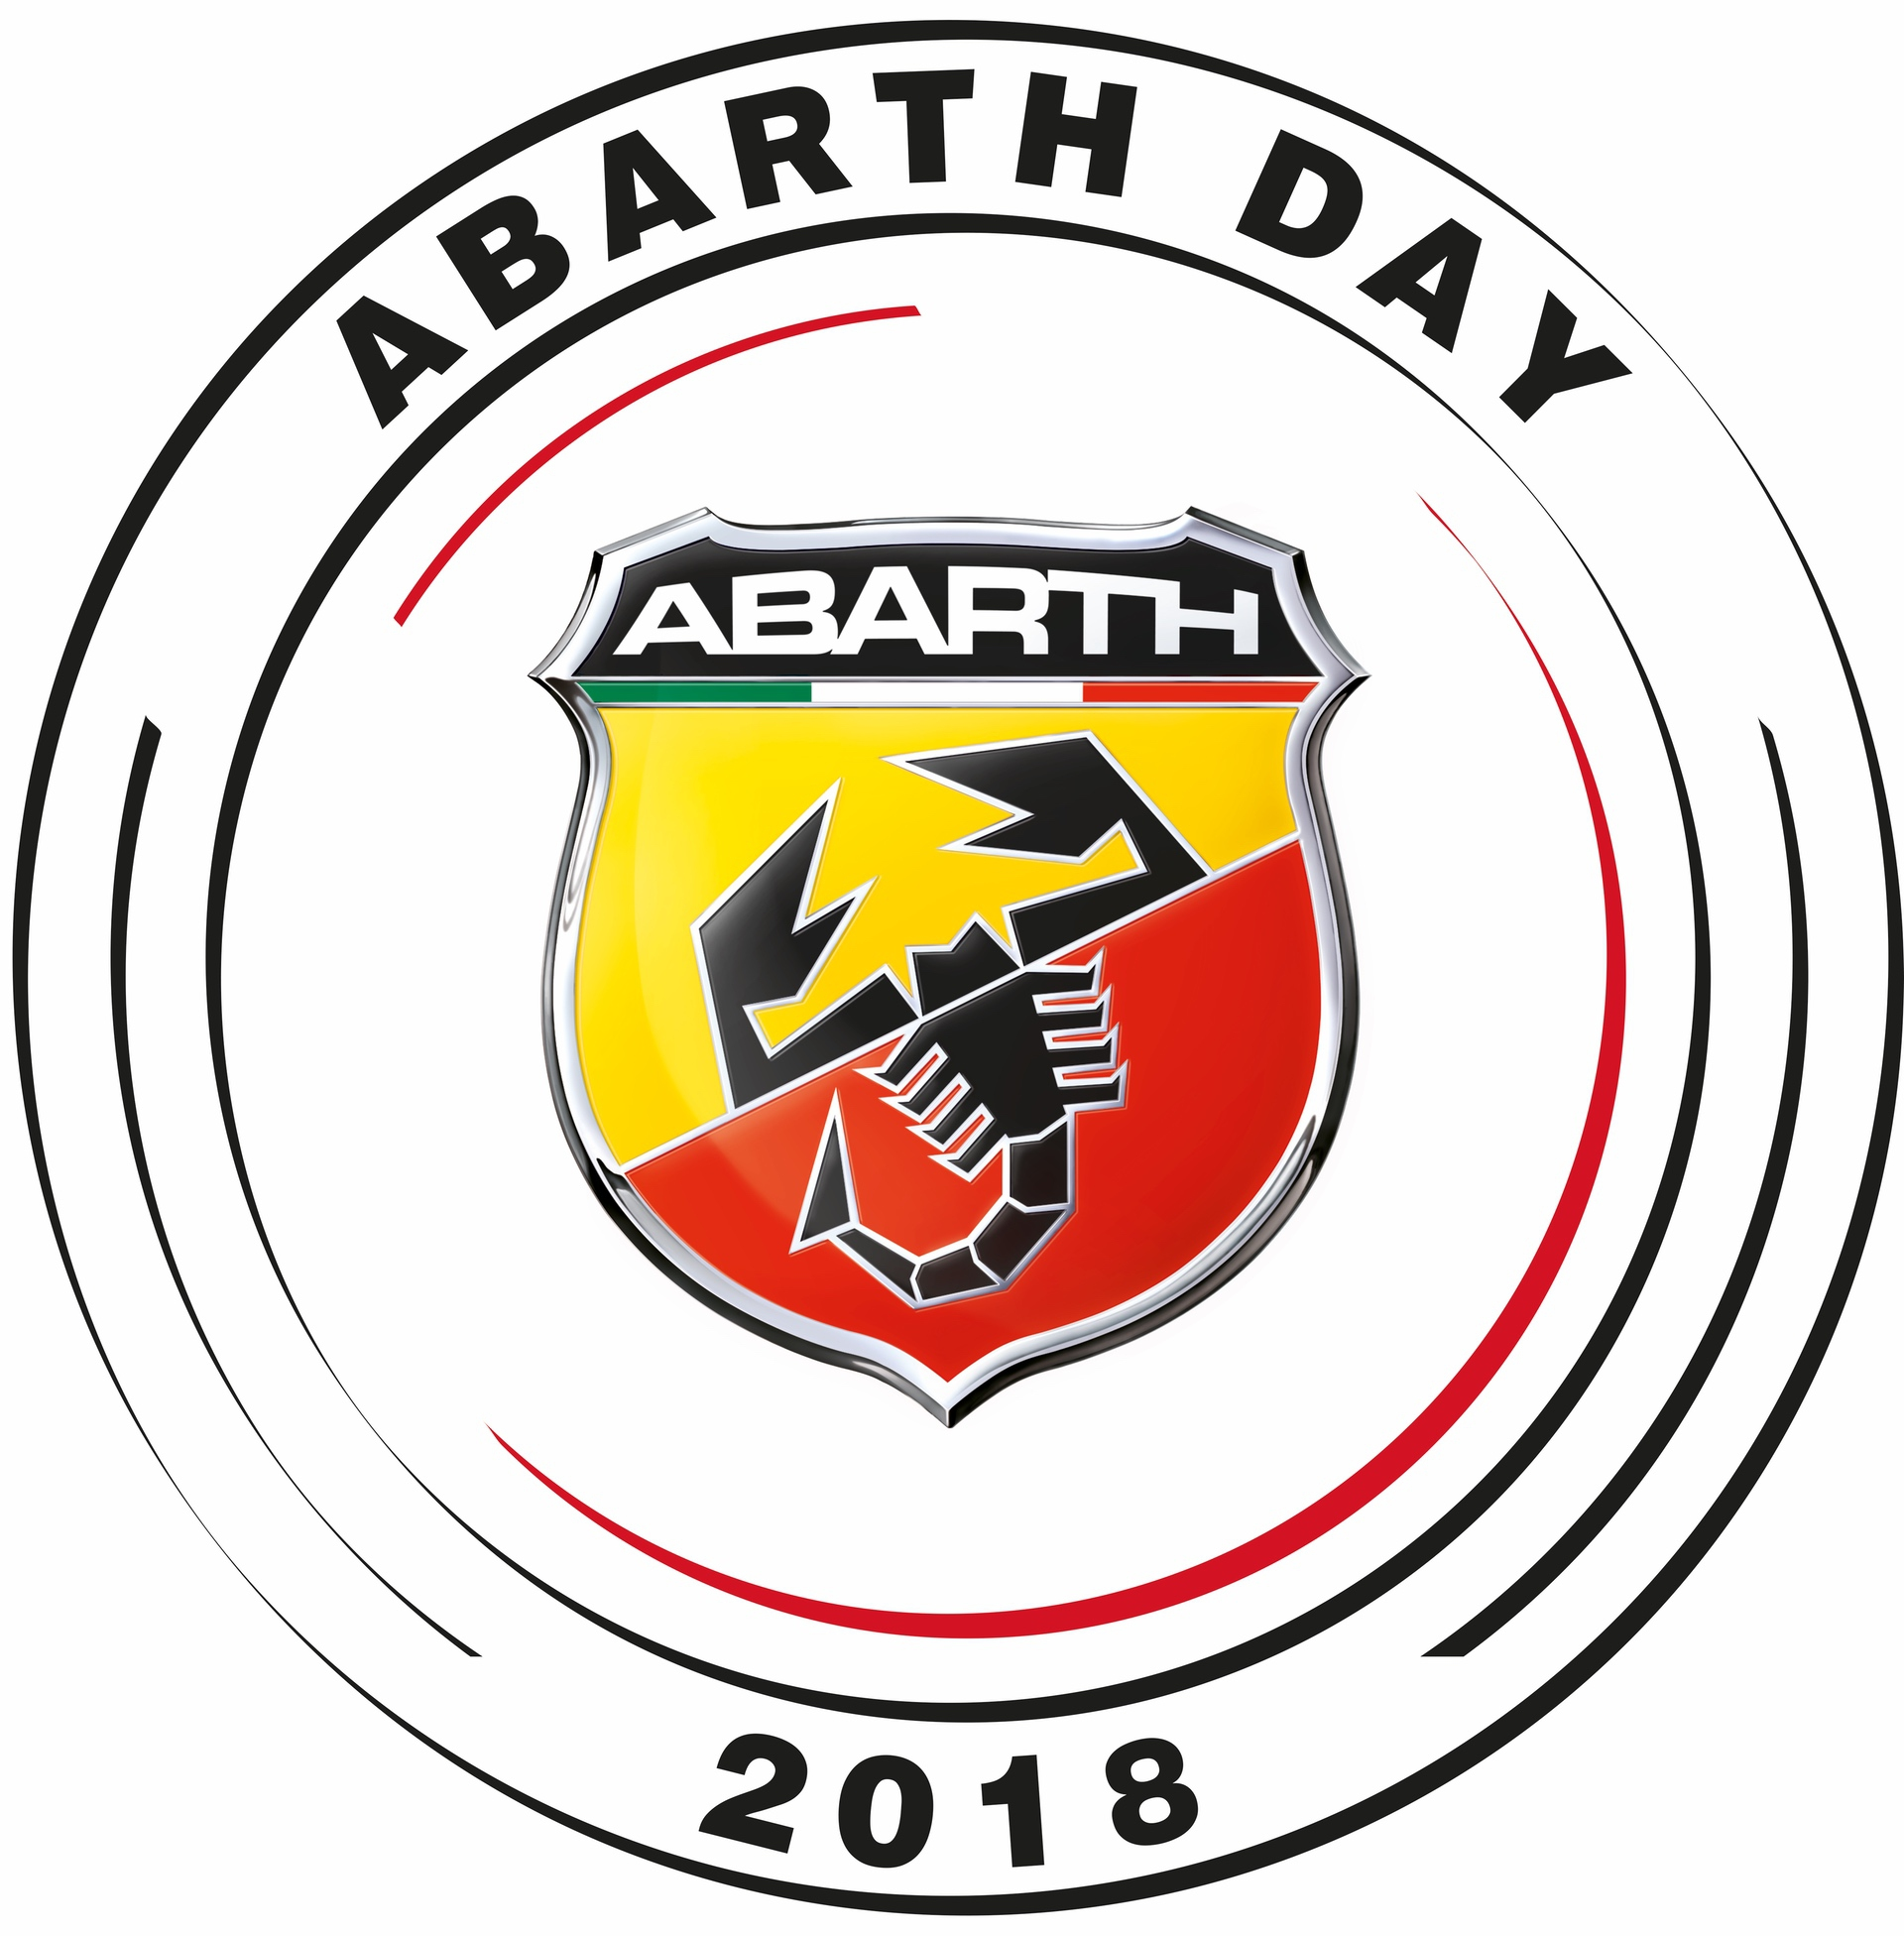 AbarthDay_2018_logo copia